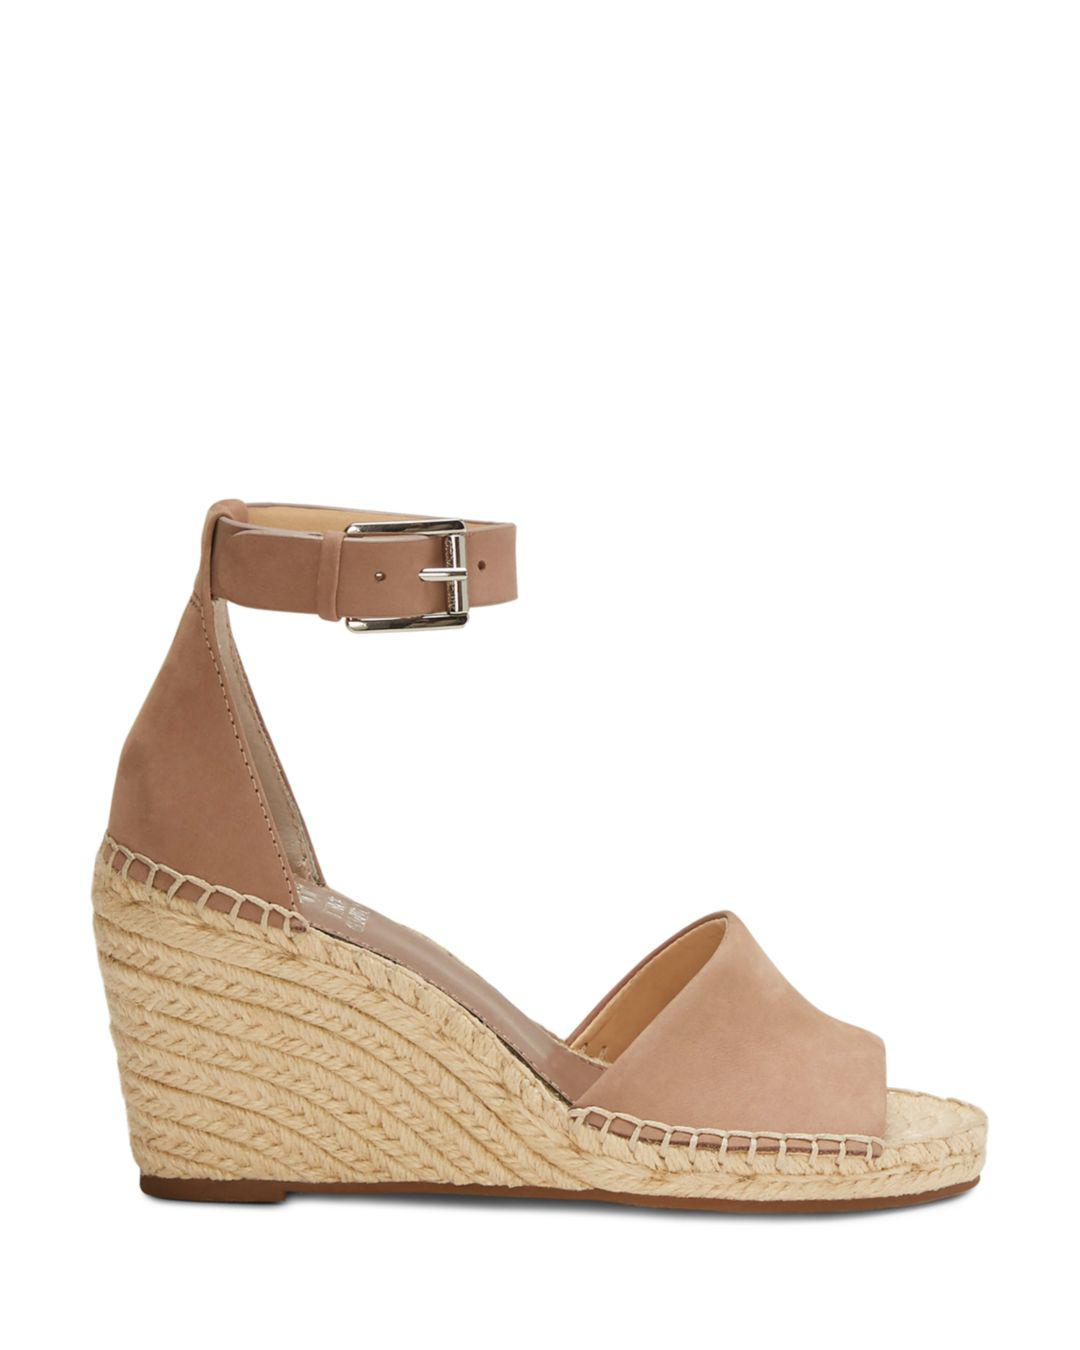 2975b8086c31 Lyst - Vince Camuto Women s Leera Suede Espadrille Wedge Sandals in Brown -  Save 41.41414141414141%